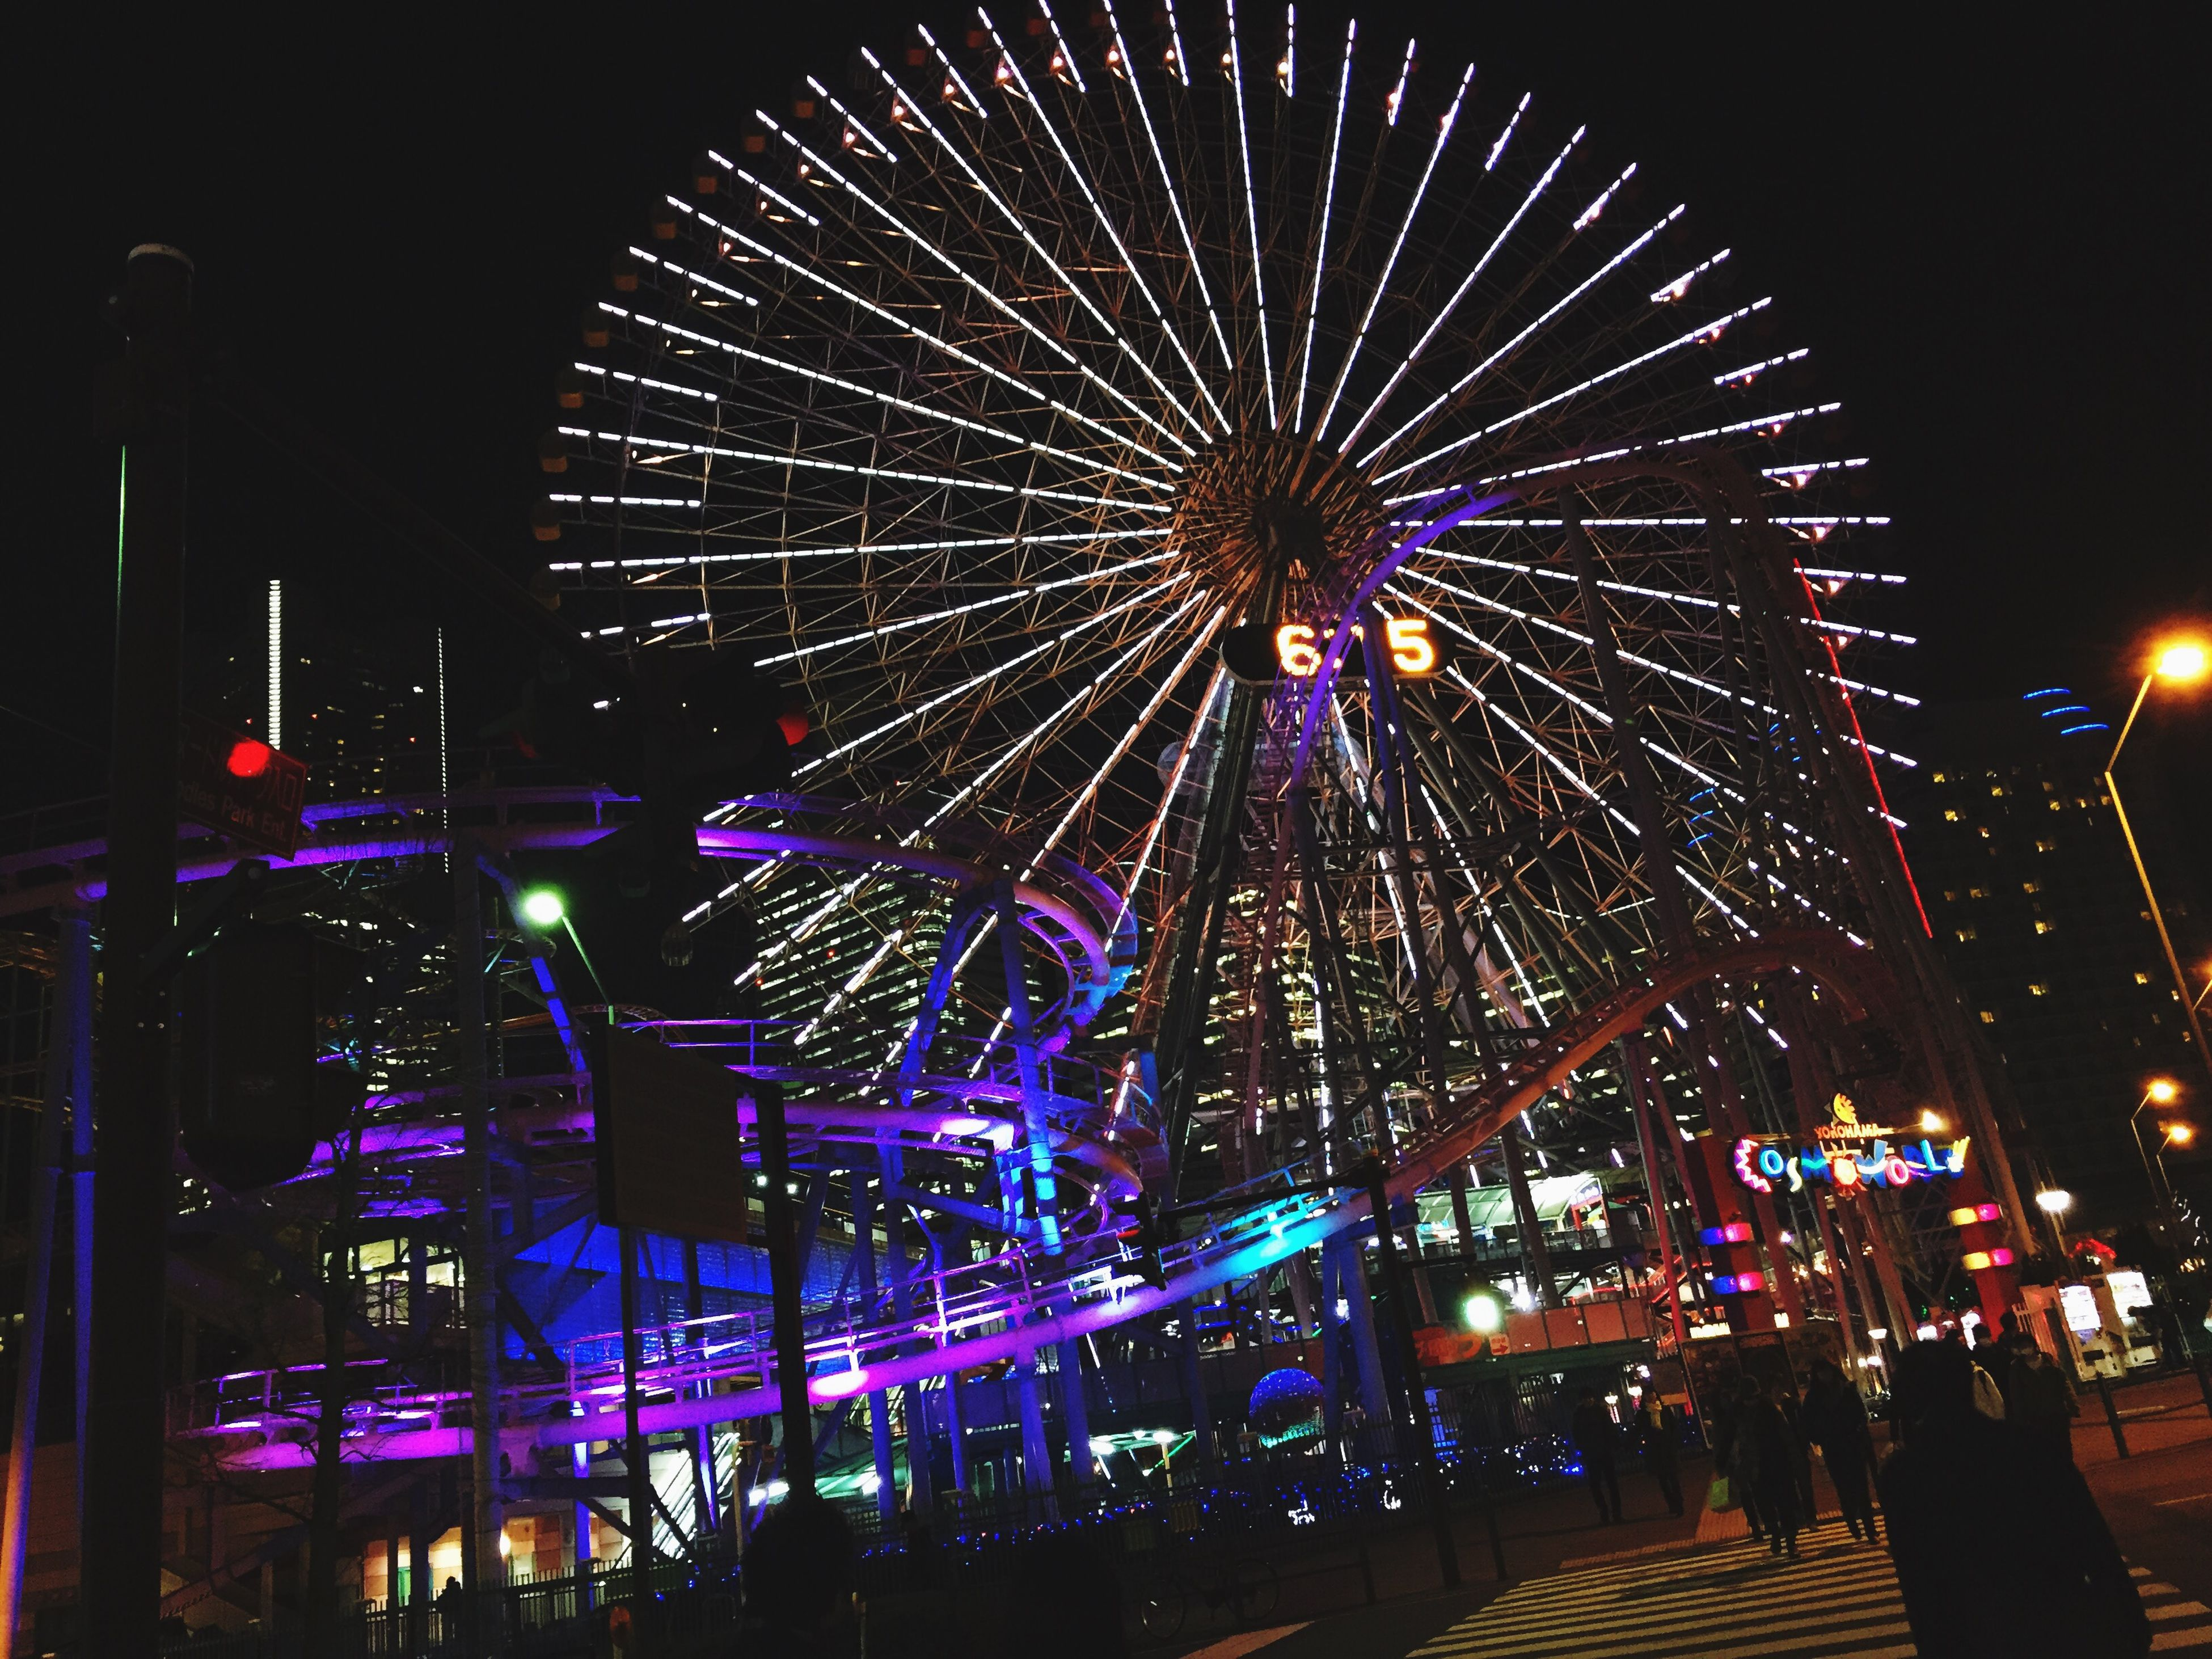 illuminated, night, arts culture and entertainment, amusement park, amusement park ride, ferris wheel, built structure, architecture, building exterior, sky, city, motion, low angle view, celebration, long exposure, leisure activity, firework display, incidental people, lighting equipment, glowing